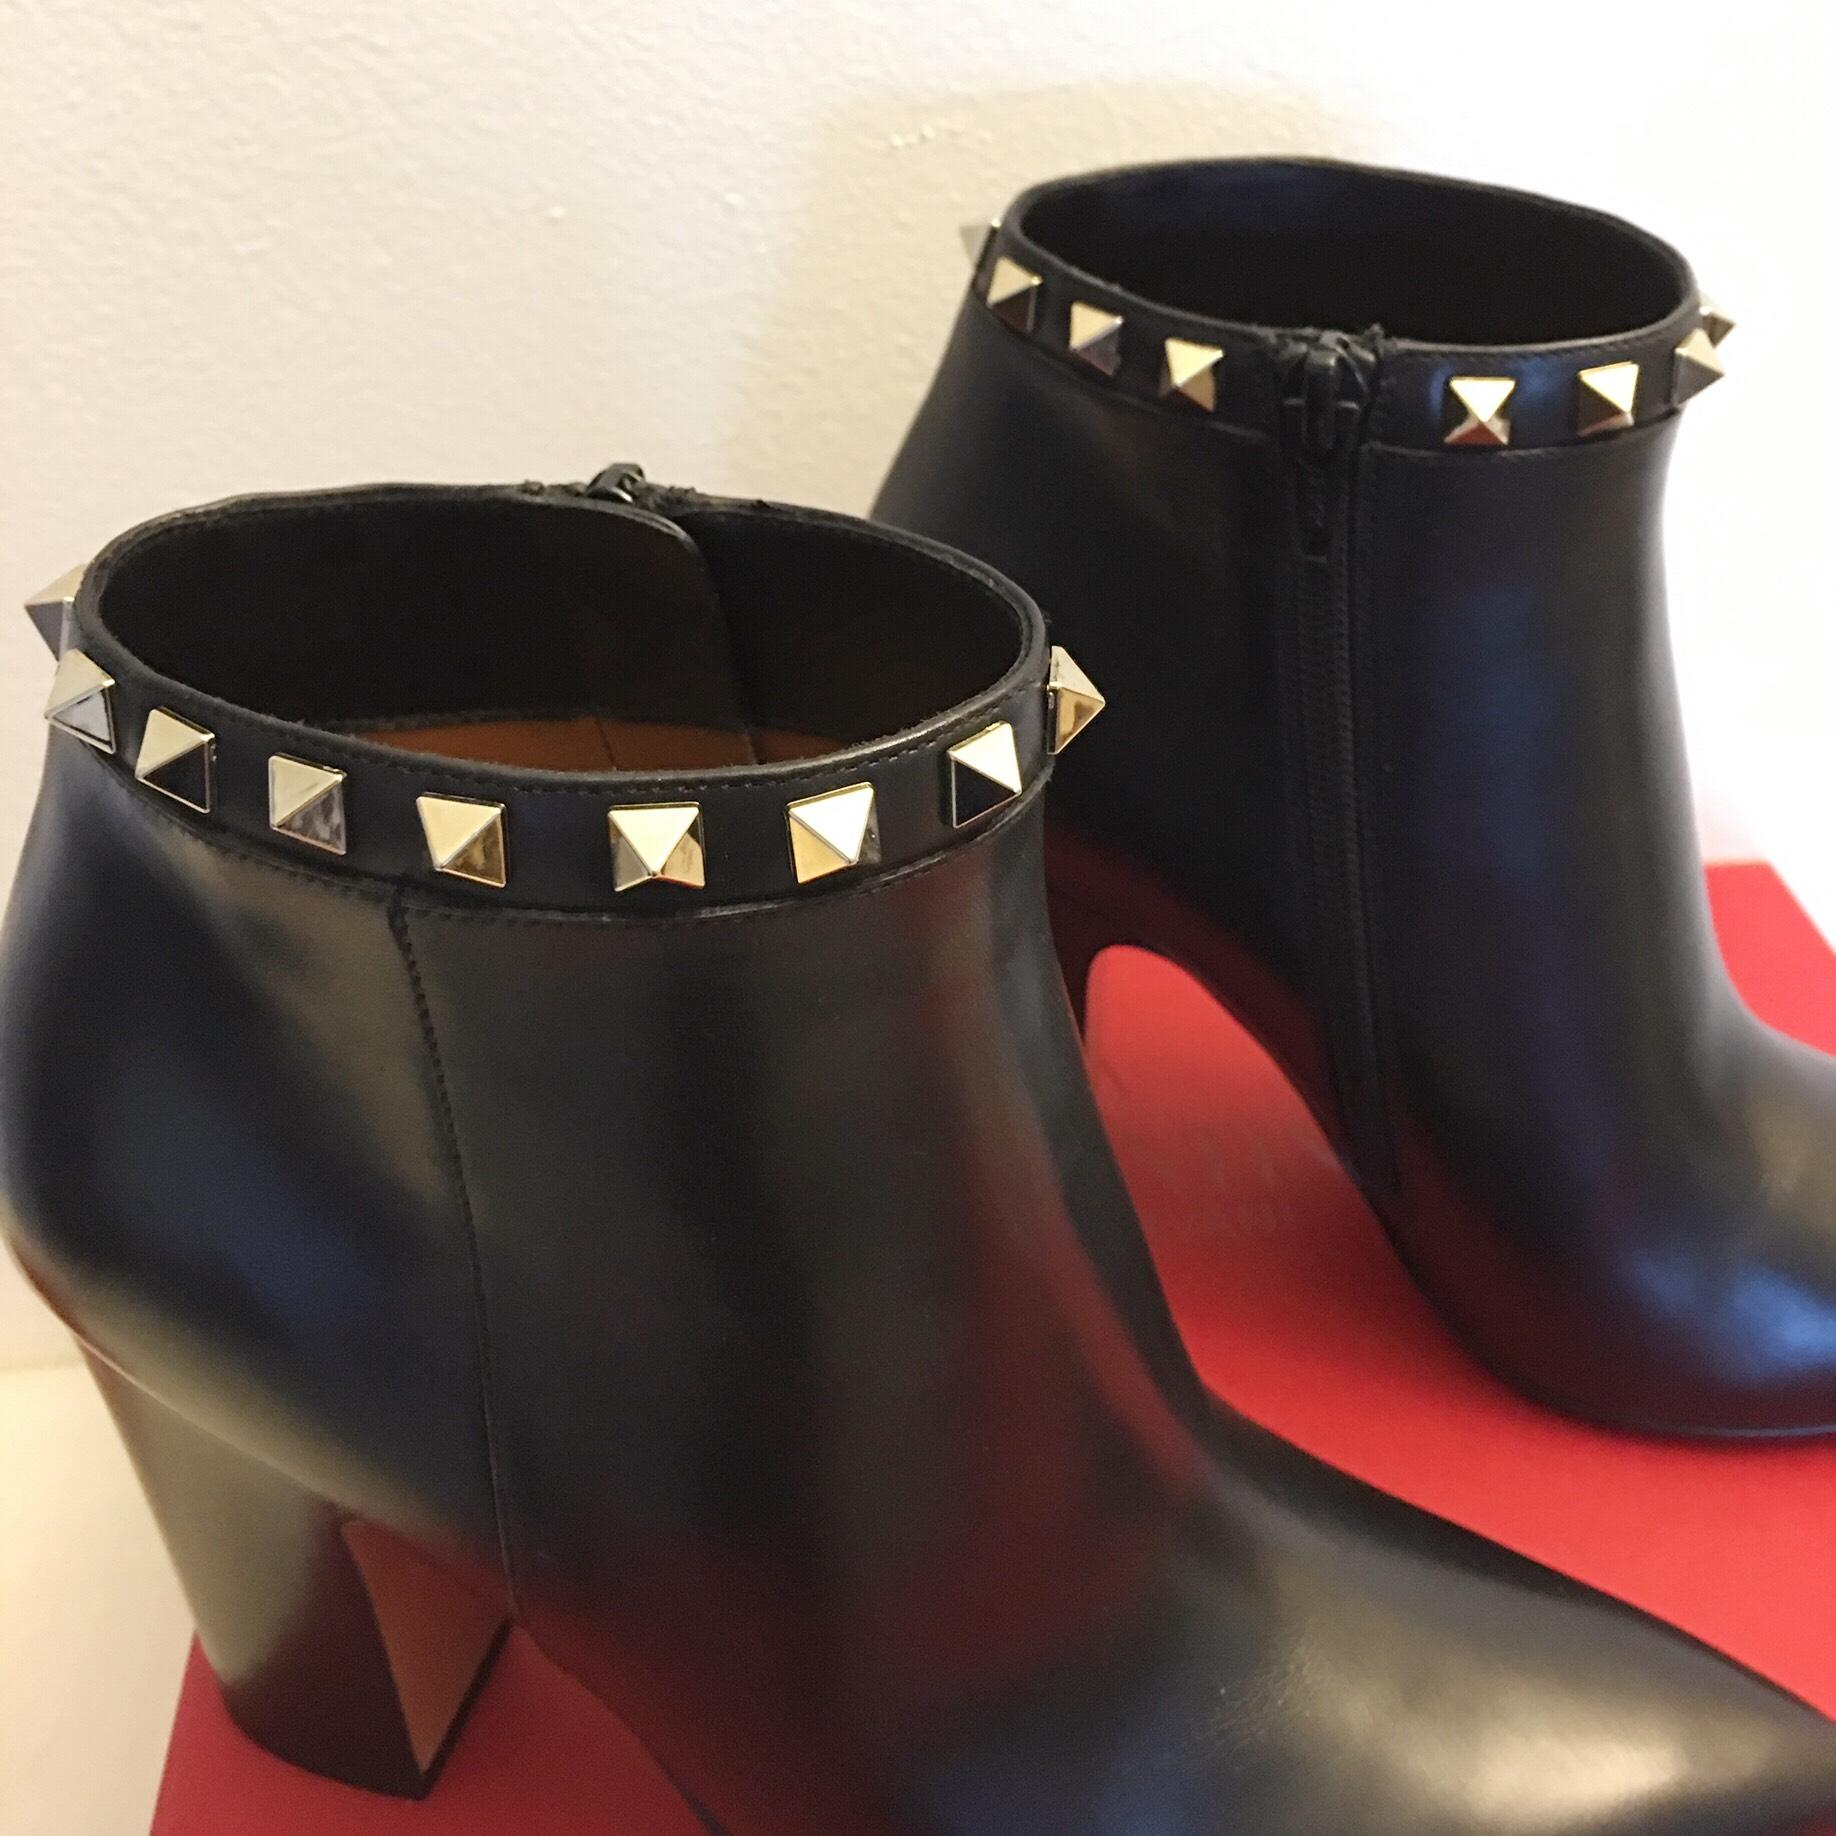 088f8e2deff17 ... Valentino Black (Nero) Rockstud Leather Ankle Boots Booties Size US 5.5  5.5 5.5 ...